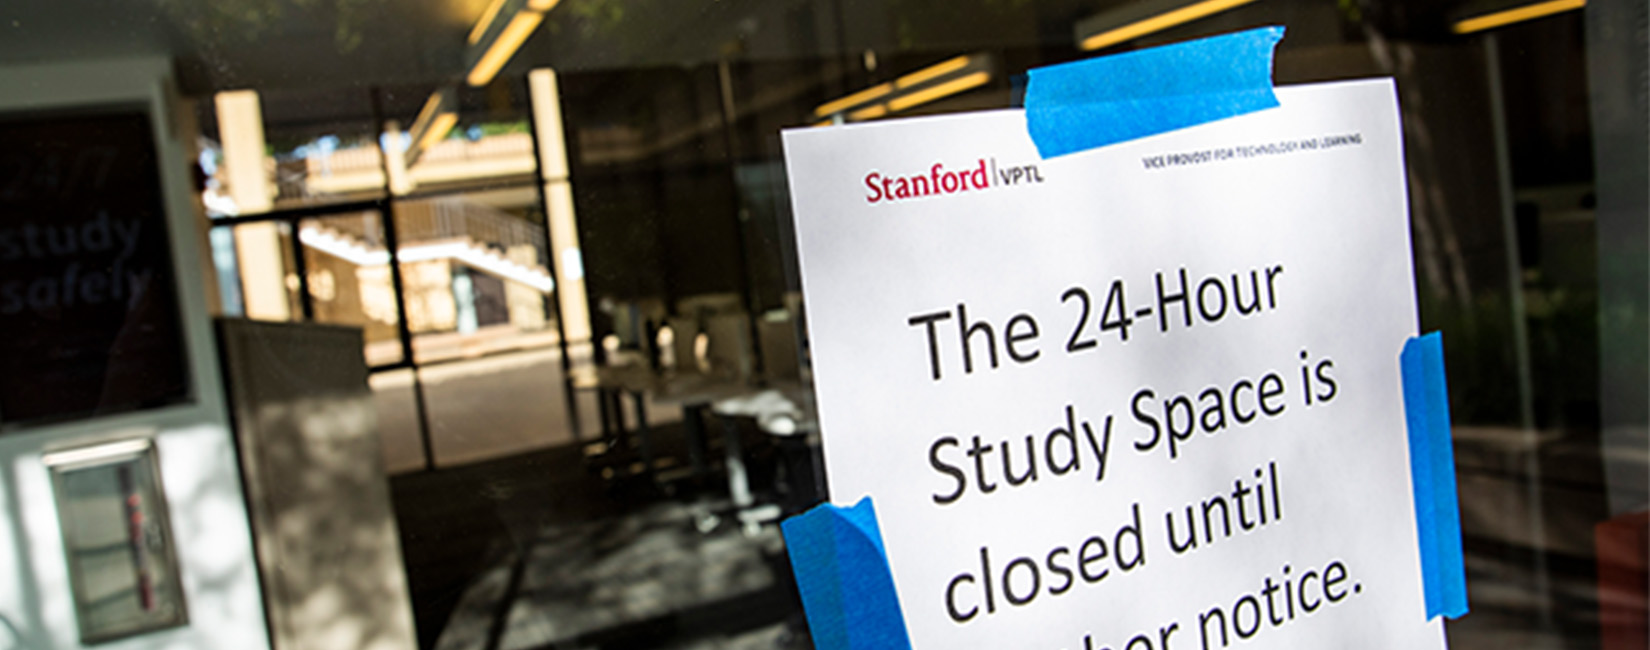 Study Hall Closed sign at Stanford during COVID-19